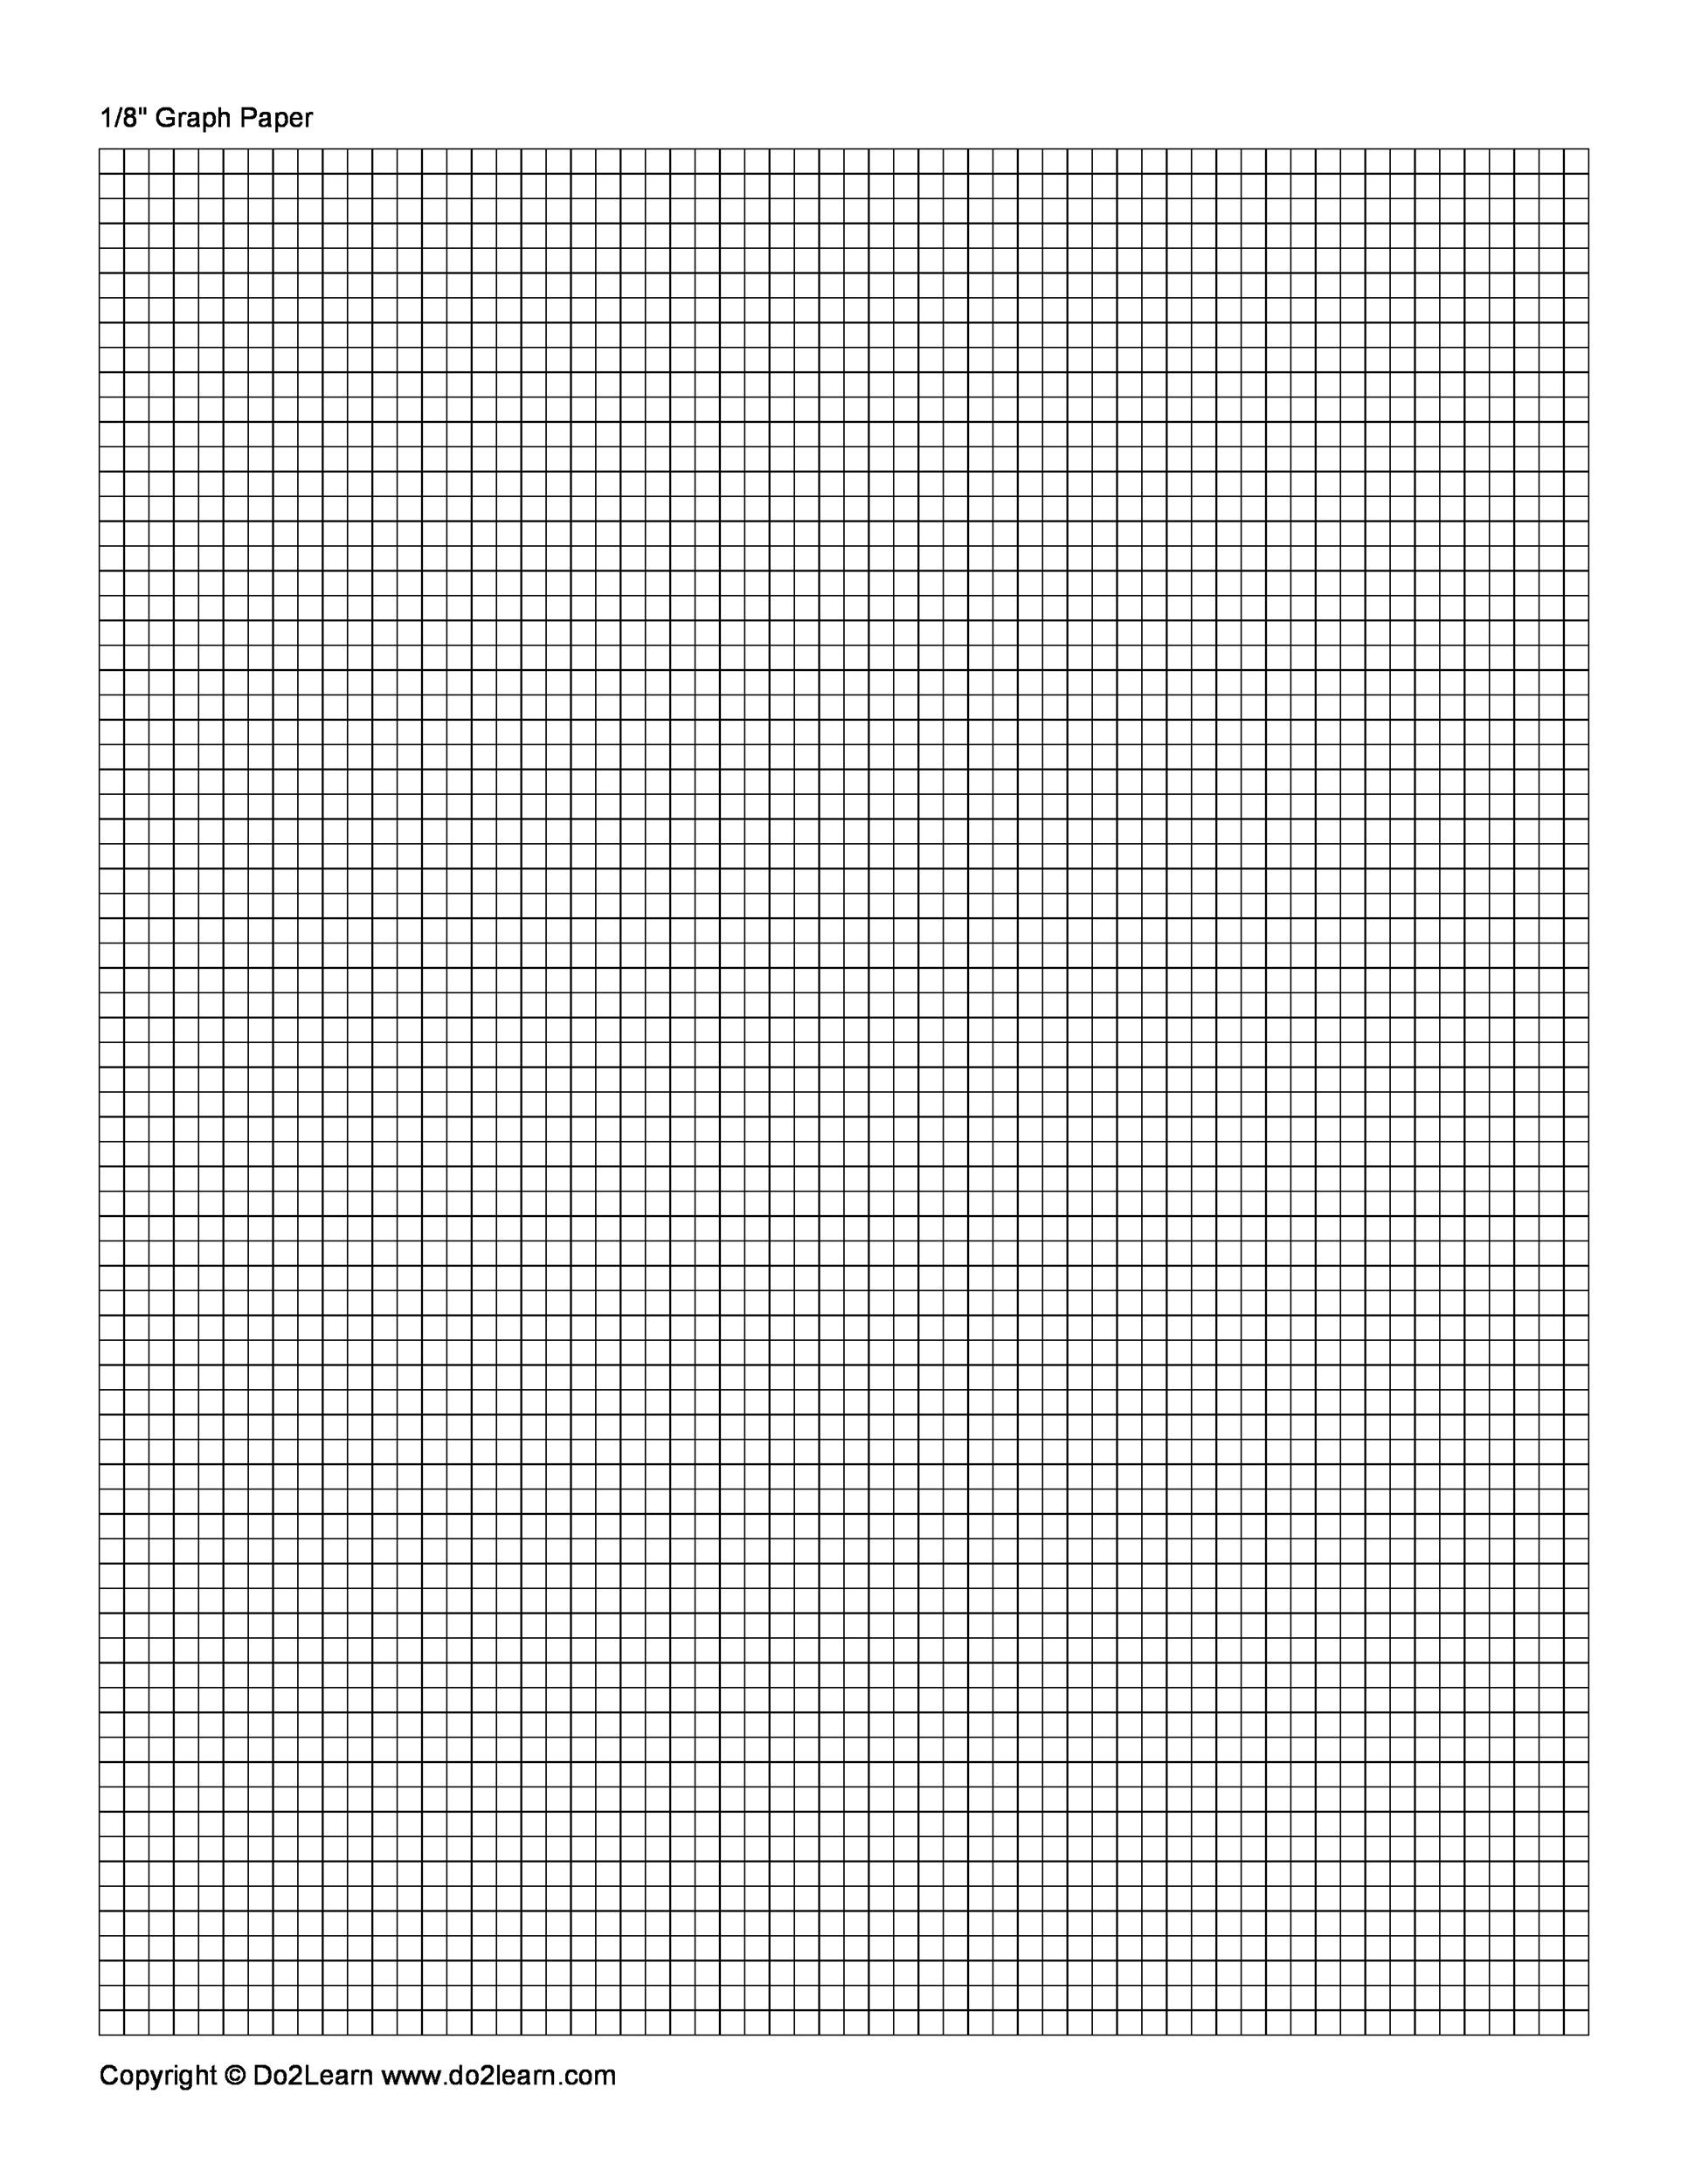 Printable Graph Paper Template 01  Free Printable Lined Paper Template